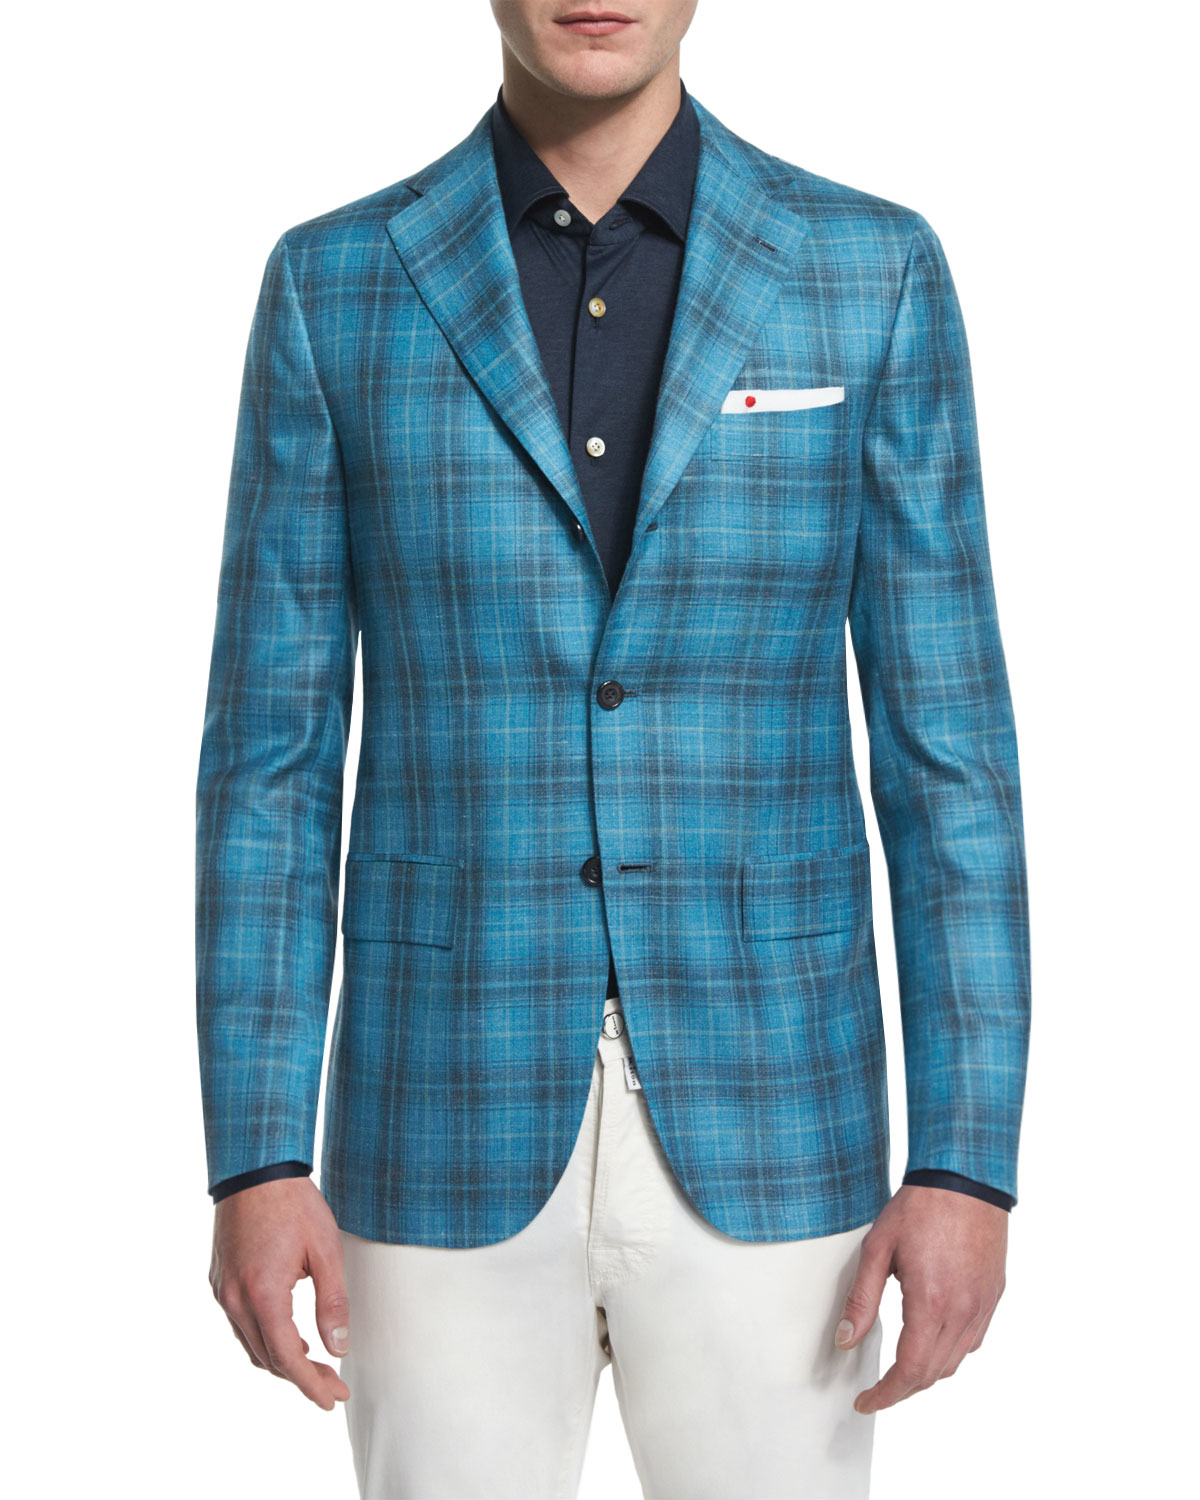 Kiton Plaid Two-button Cashmere Jacket in Blue for Men